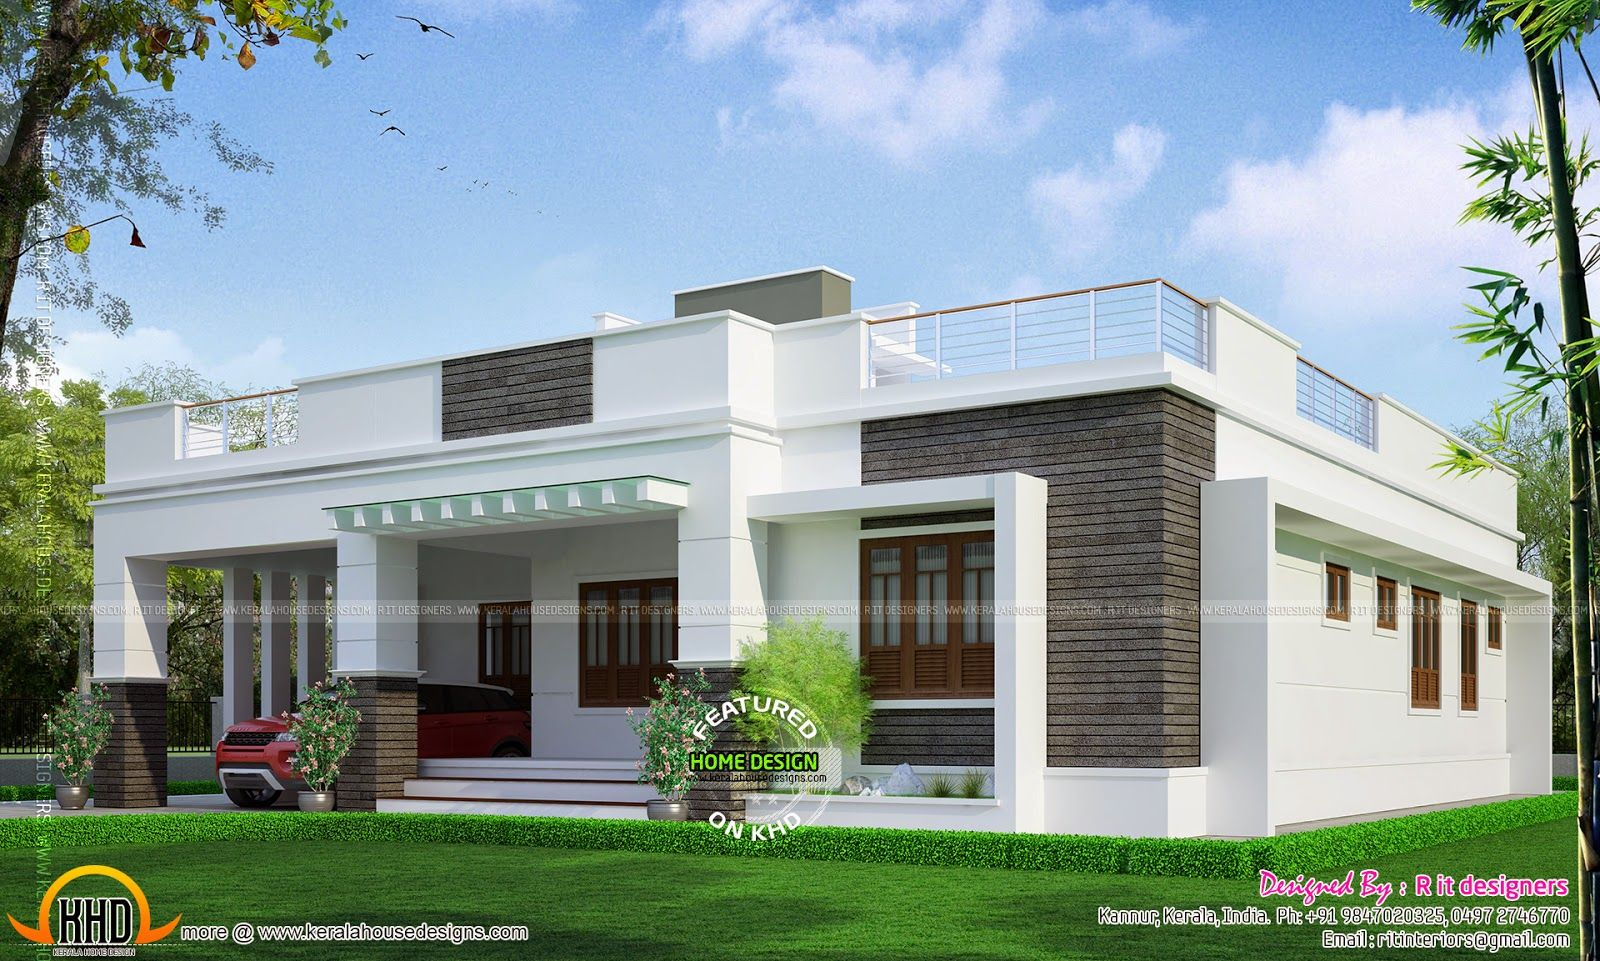 U20b910 Lakhs Budget Smallbudget Single Floor House In An Area Of 812 Square  Feet By Haris Mohammed, Kasaragod, Kerala. | House Elevation Indian Single  ... Part 83